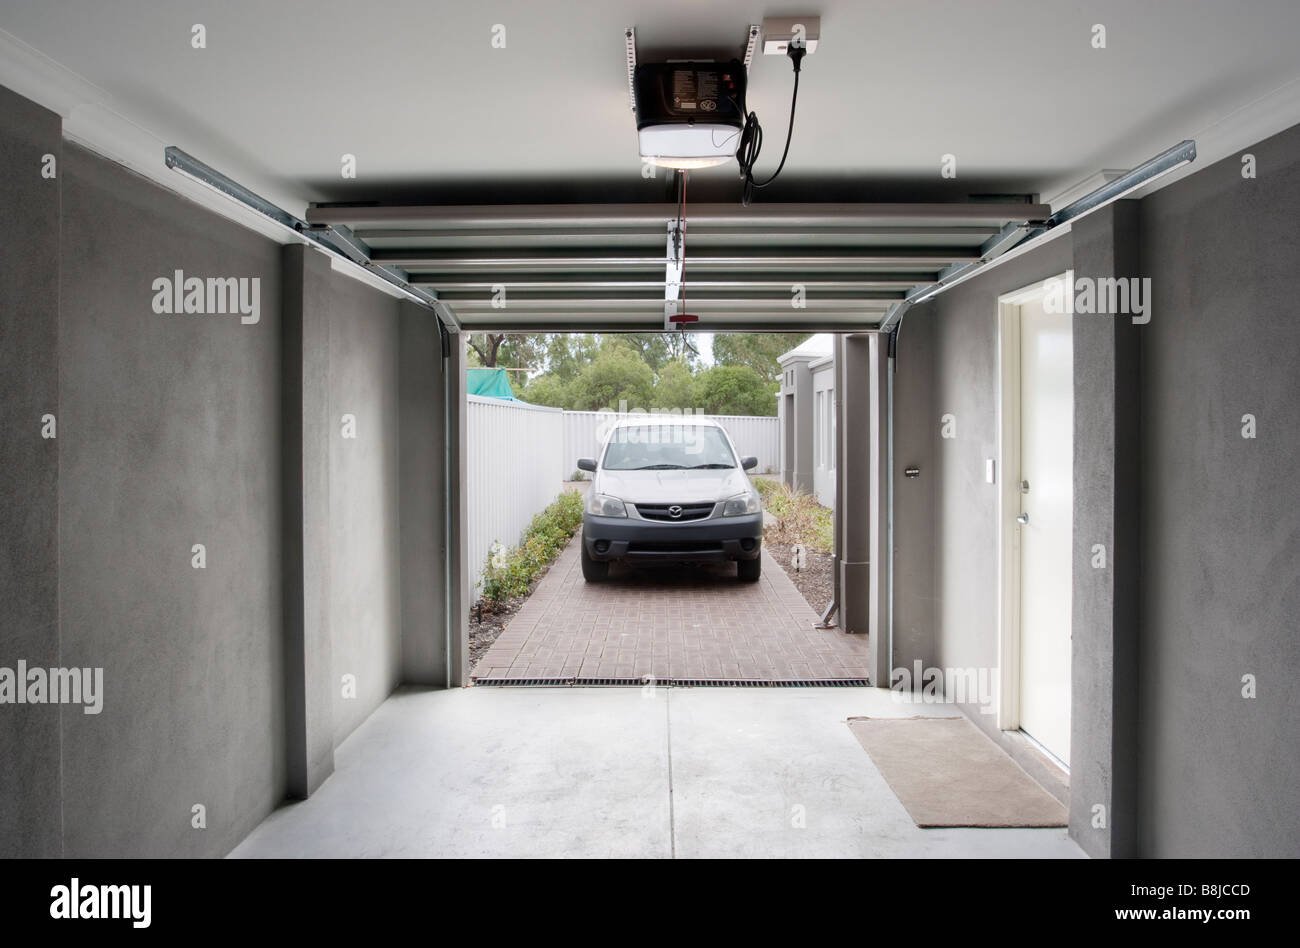 Automatic Garage Door And Fireplace